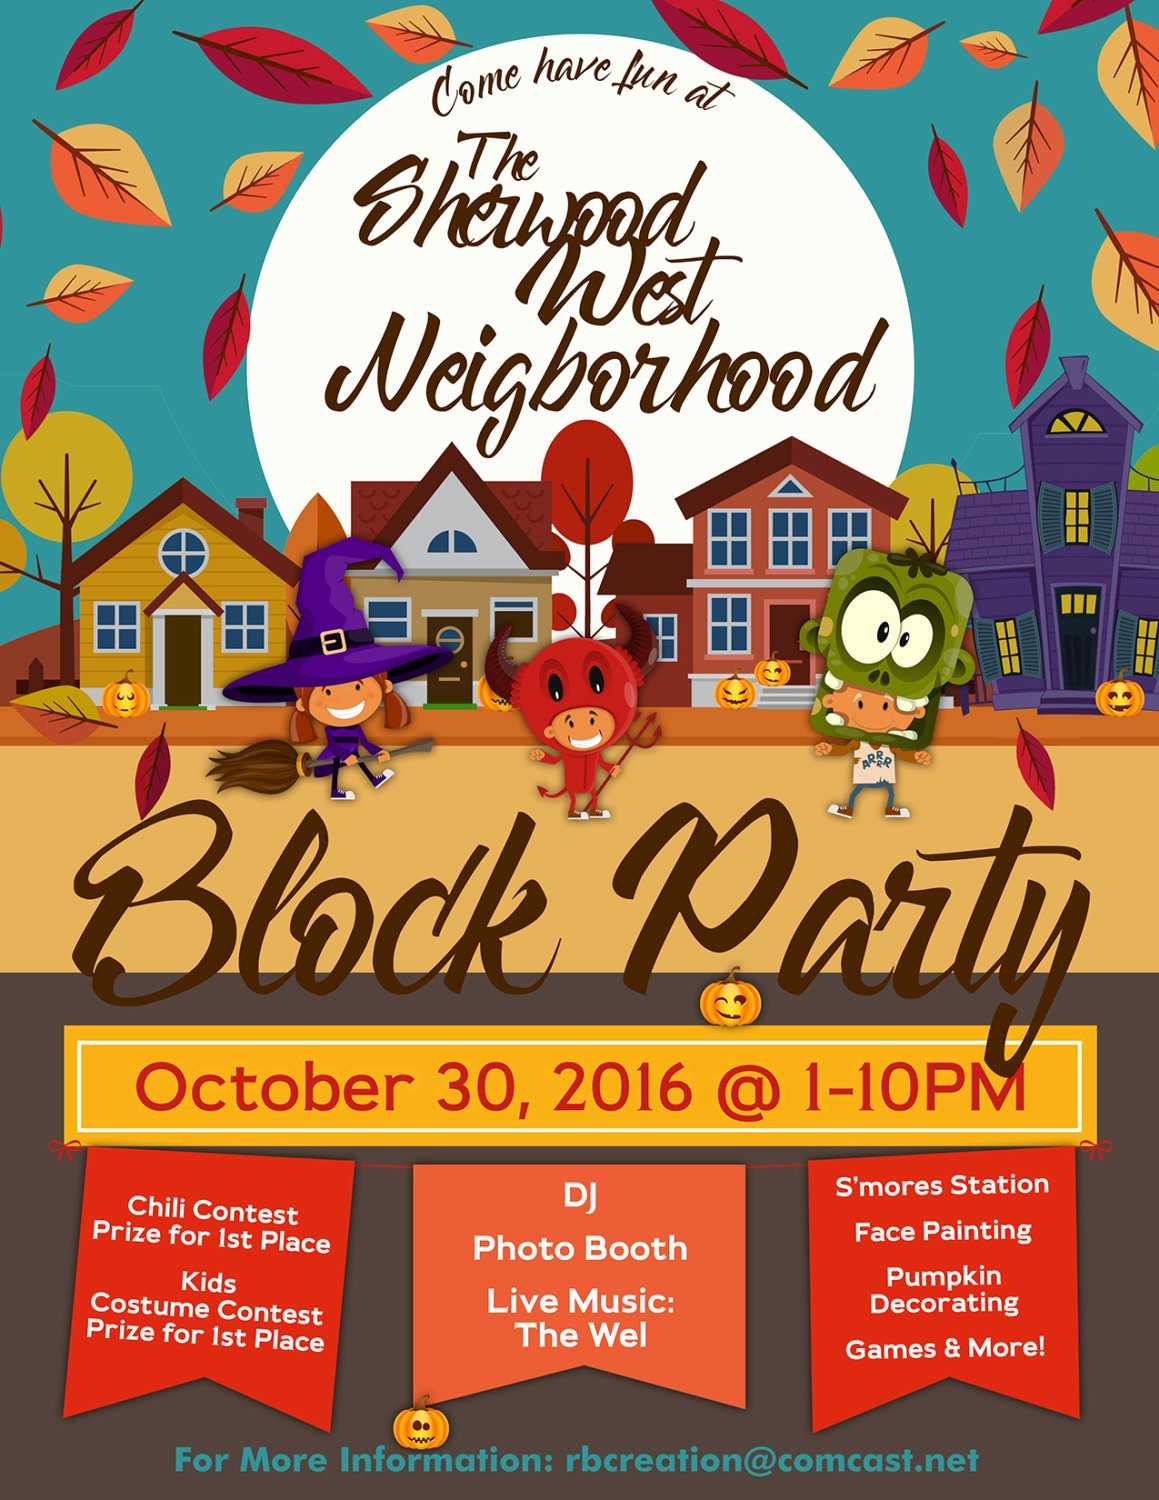 Block Party Flyer Templates Free Inspirational Block Party Flyer Fall Festival Fall Flyer Autumn Flyer Thanksgiving Flyer 8 5x11 Flyer